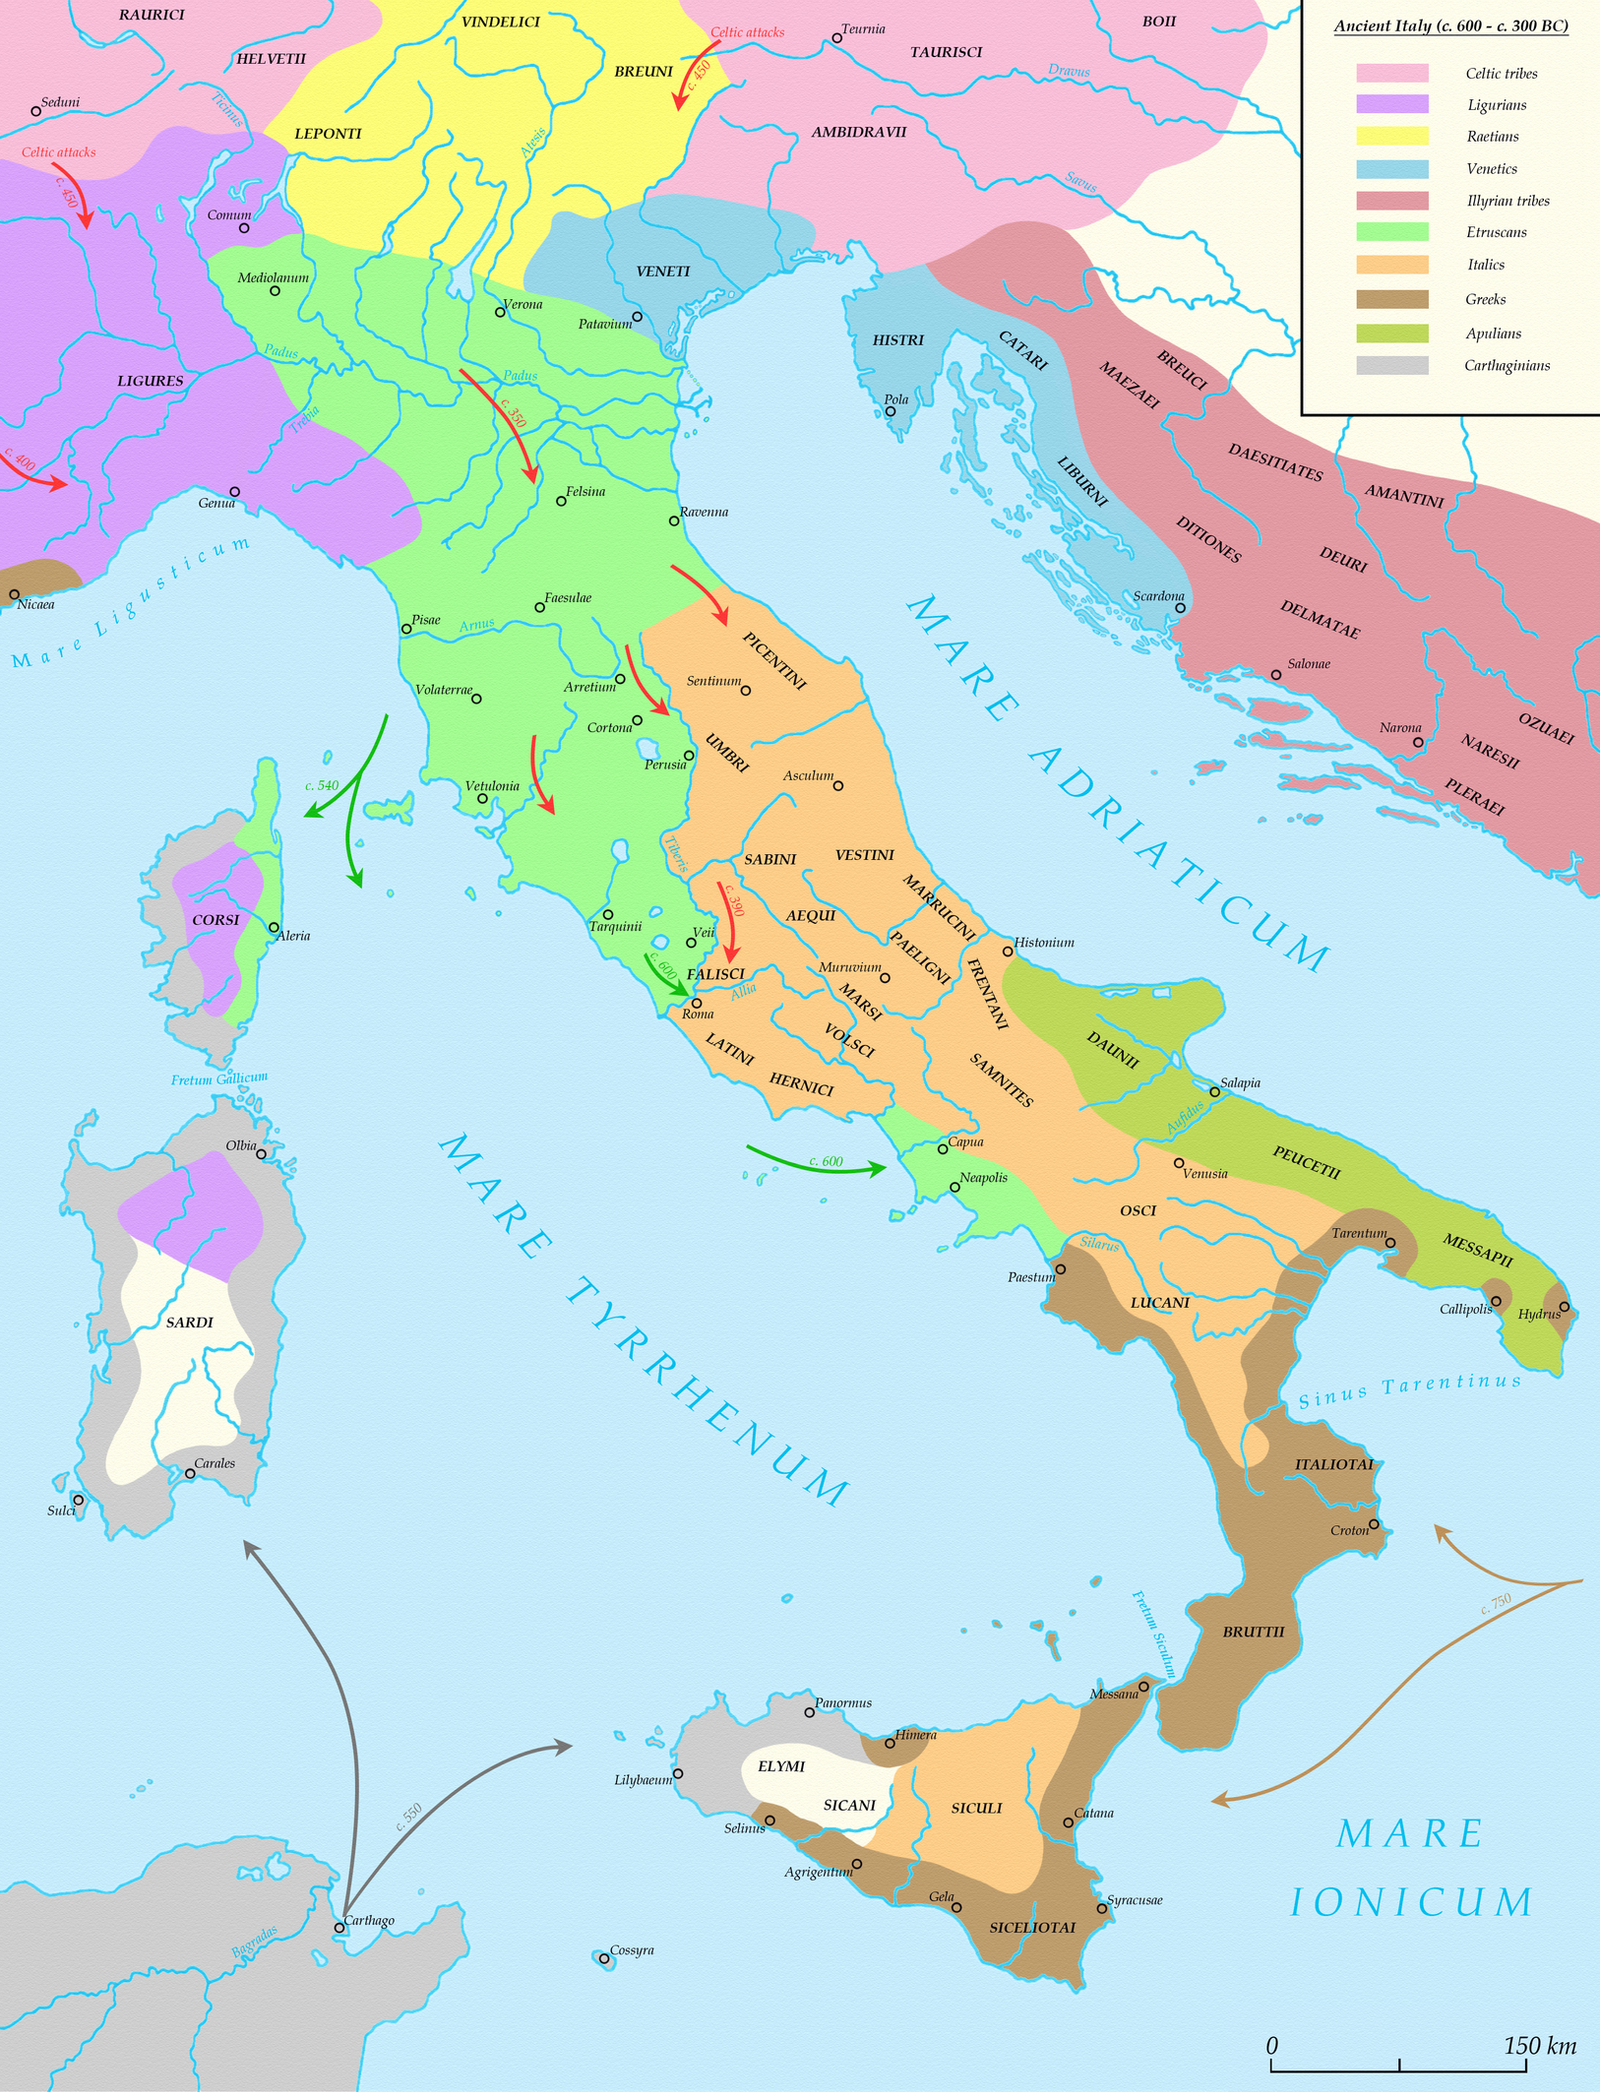 Ancient Italy (c. 600 - c. 300 BC) by Undevicesimus